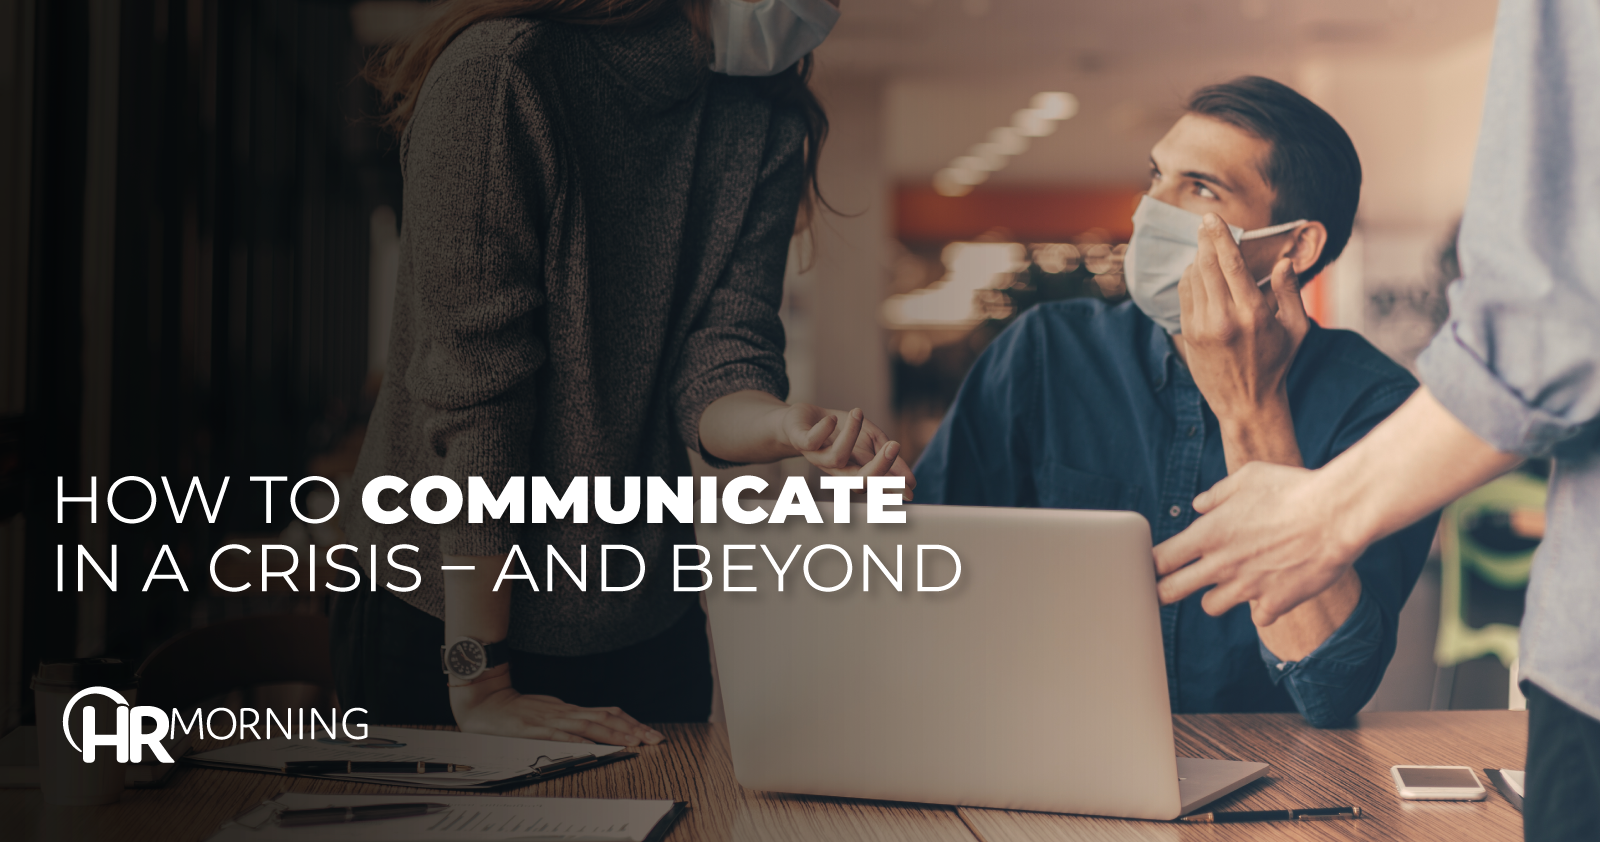 How To Communicate In A Crisis And Beyond